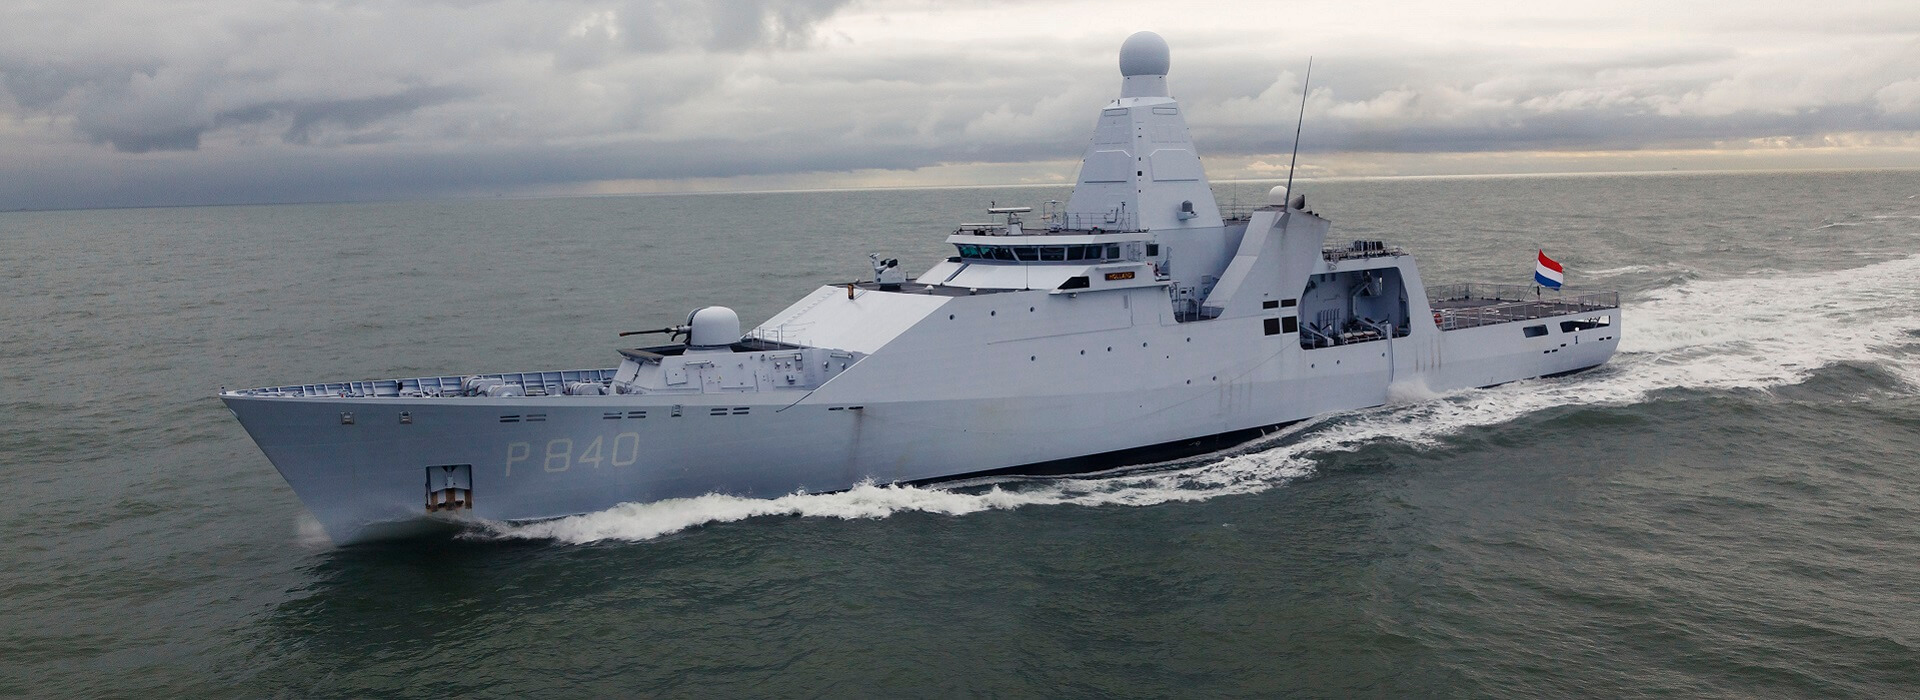 Zr.Ms. Friesland